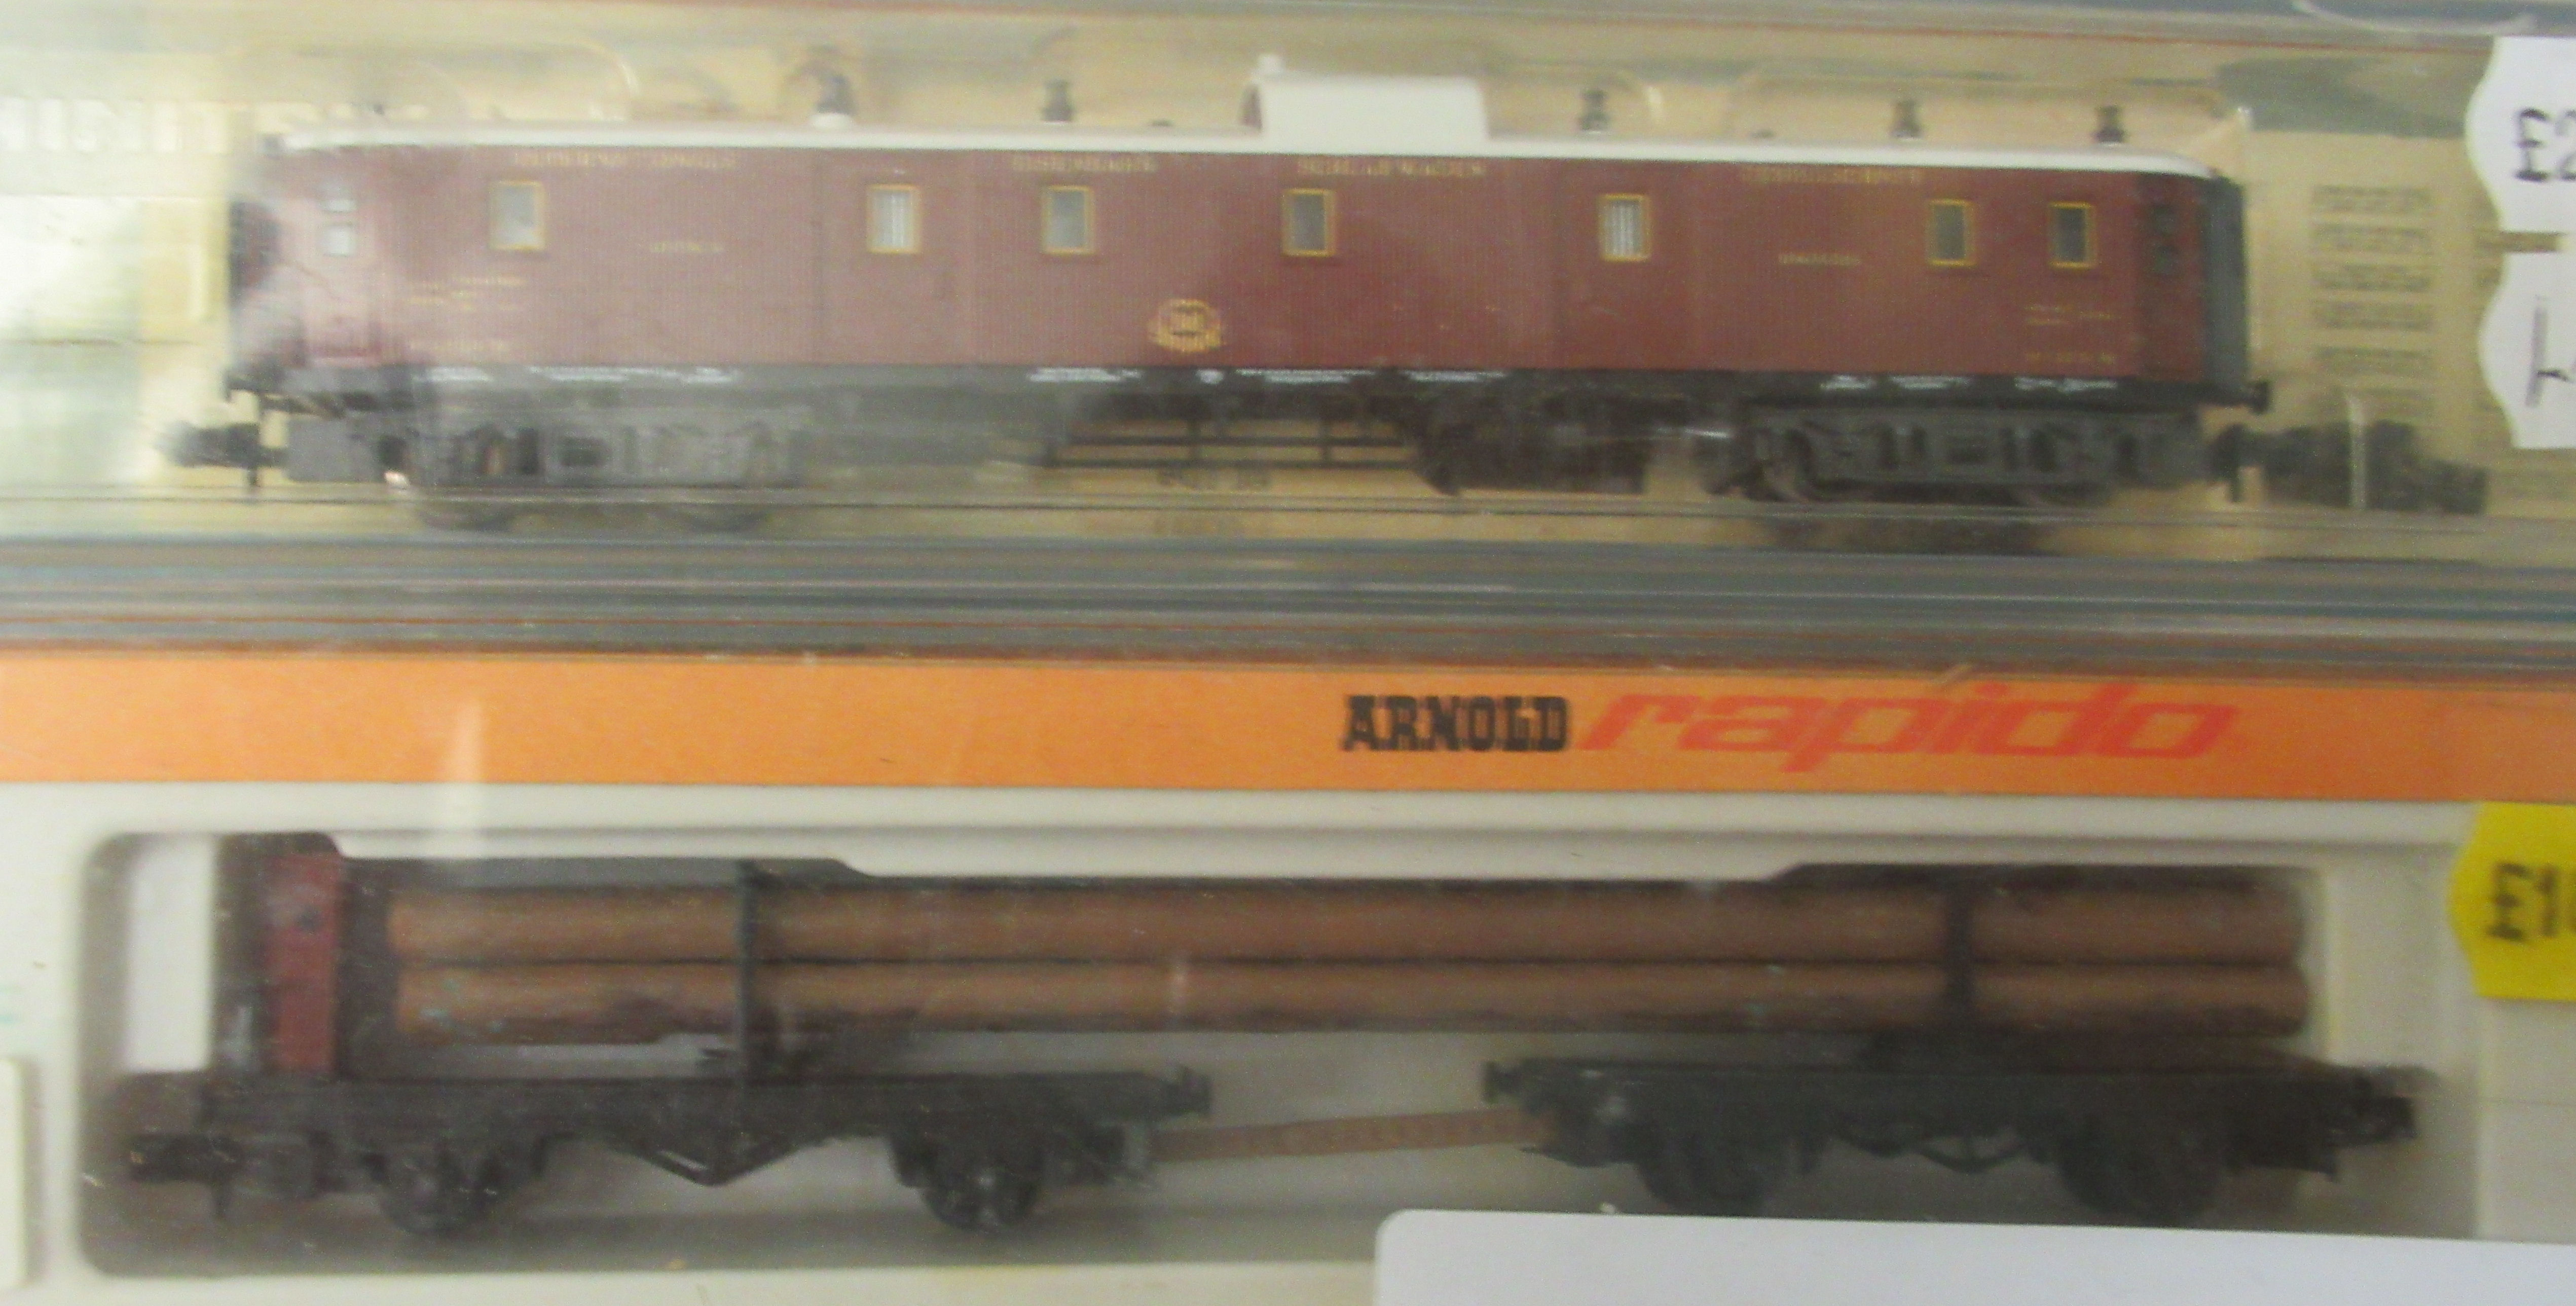 N gauge model railway accessories: to include four Arnold passenger coaches boxed - Image 4 of 4